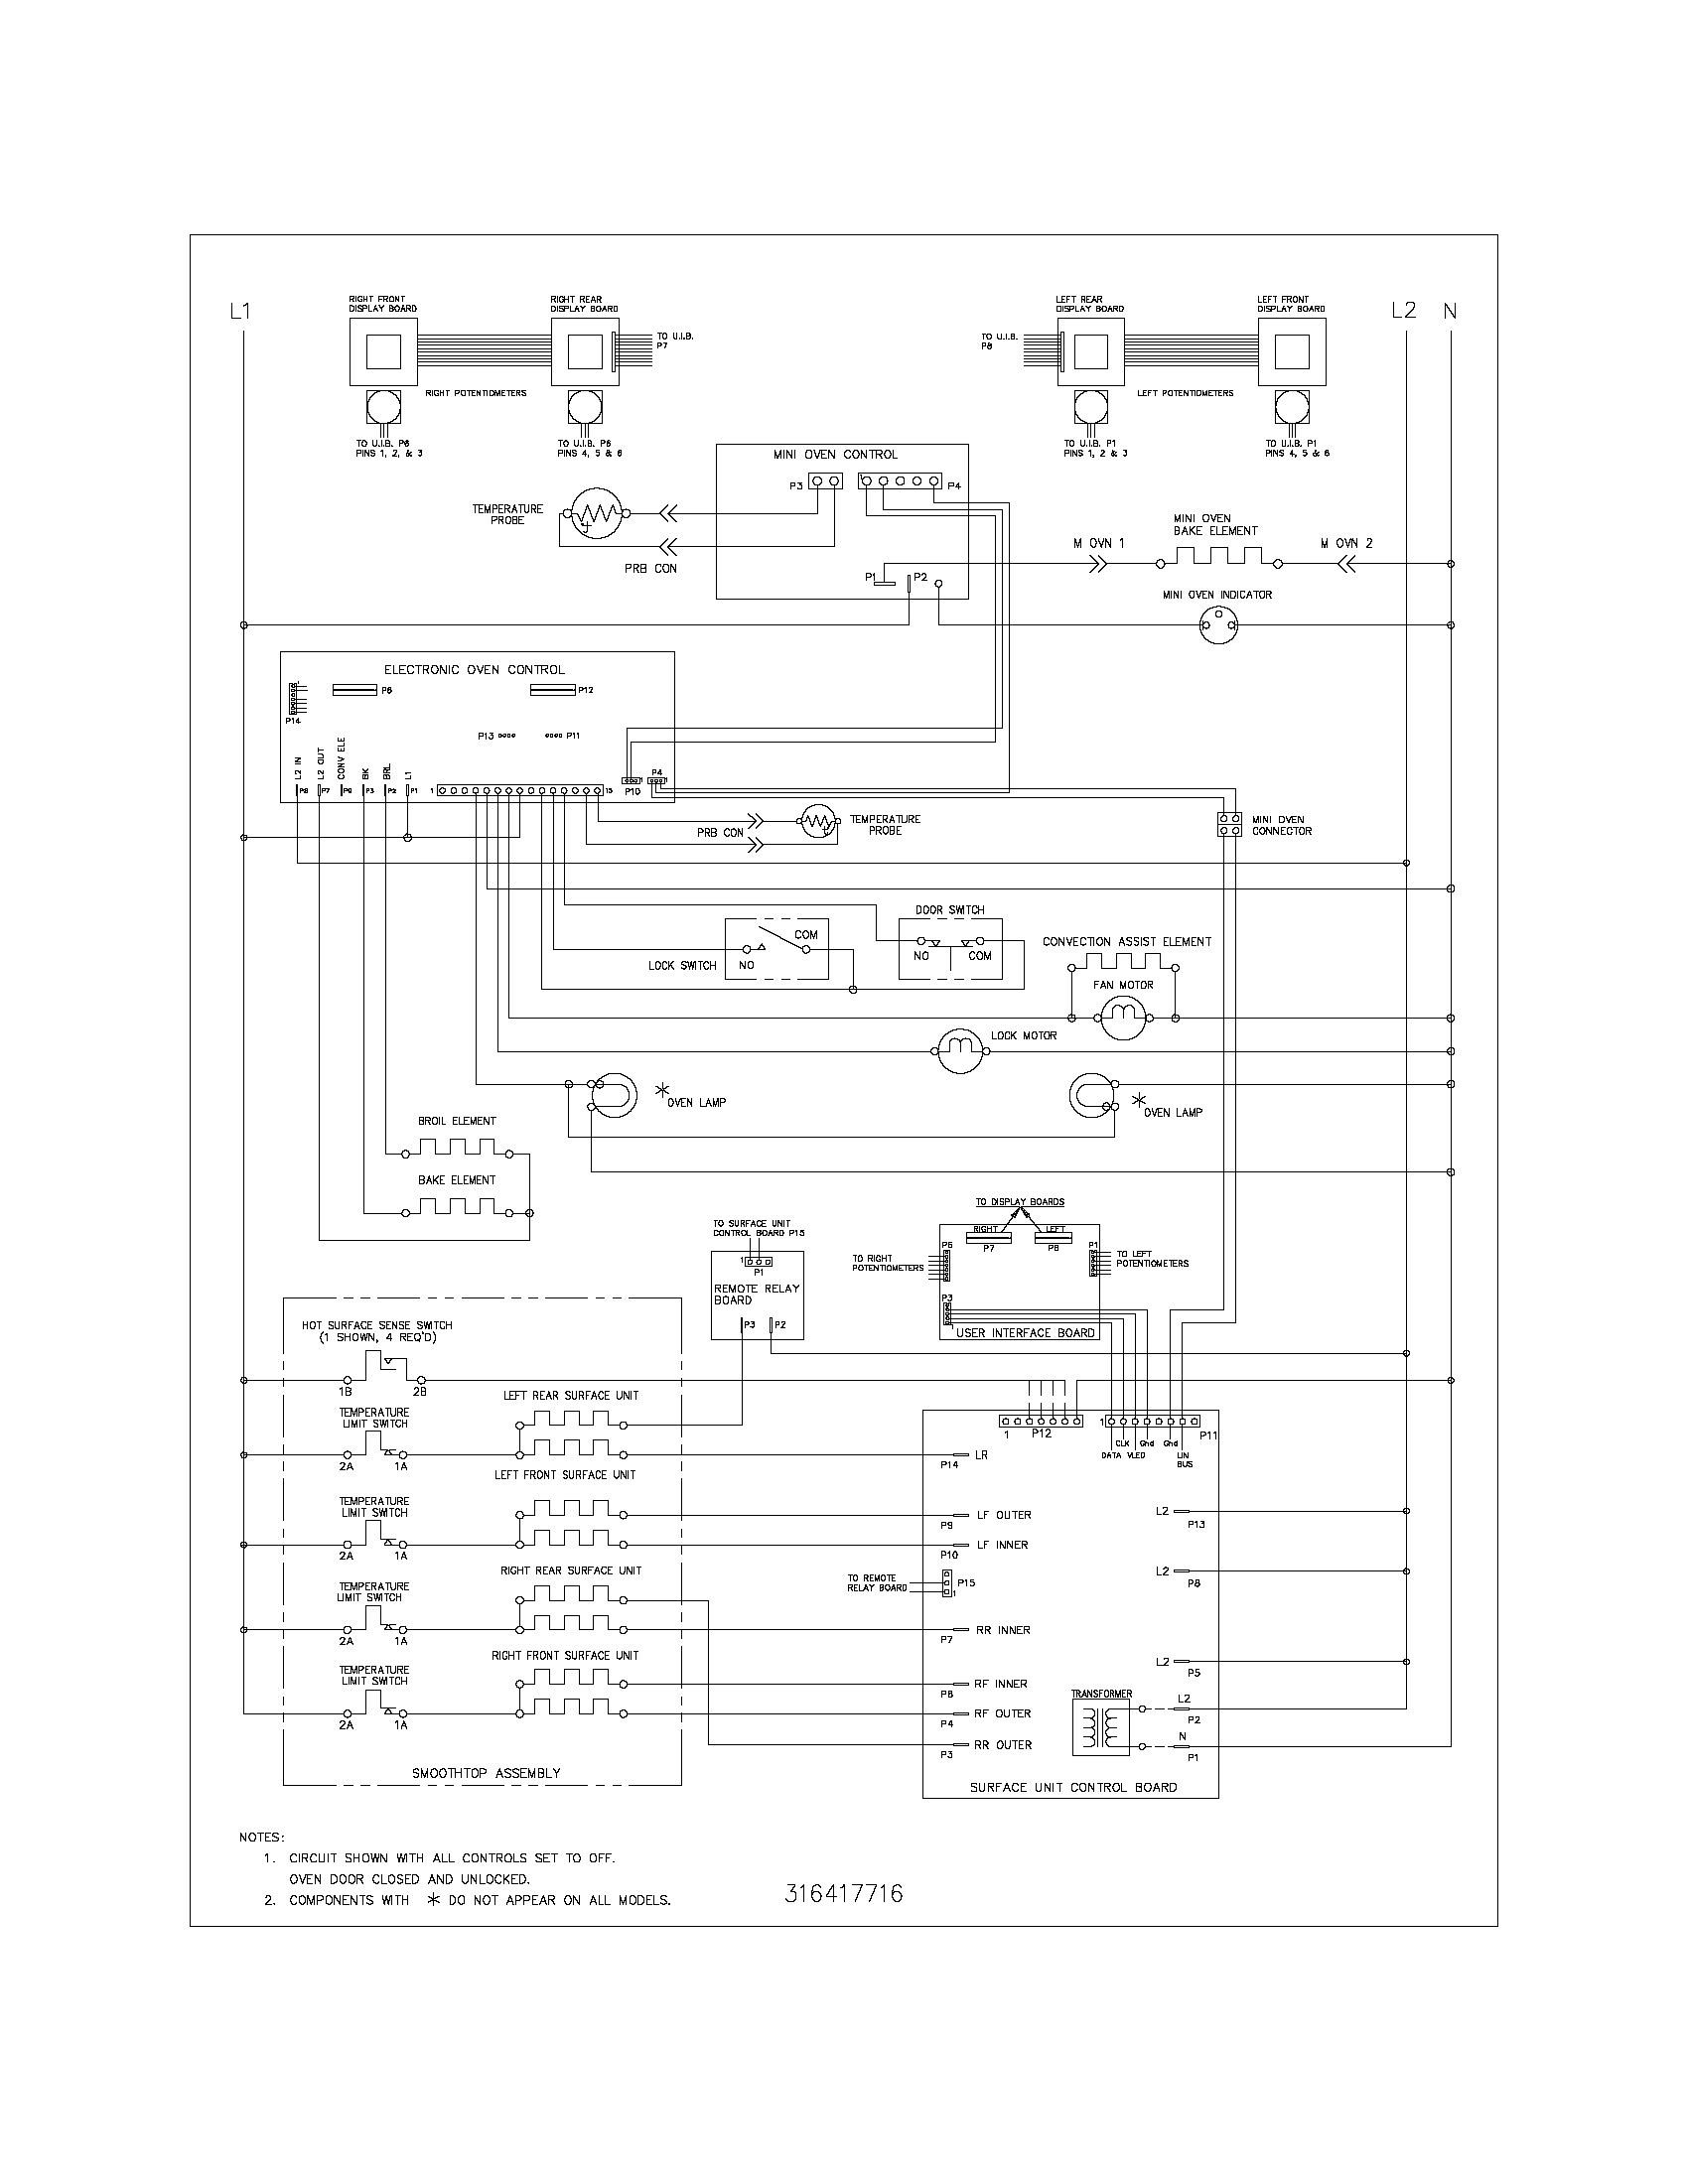 wiring schematic parts dimplex wiring diagram internet of things diagrams \u2022 free wiring dimplex bfh24bwsr wiring diagram at gsmx.co